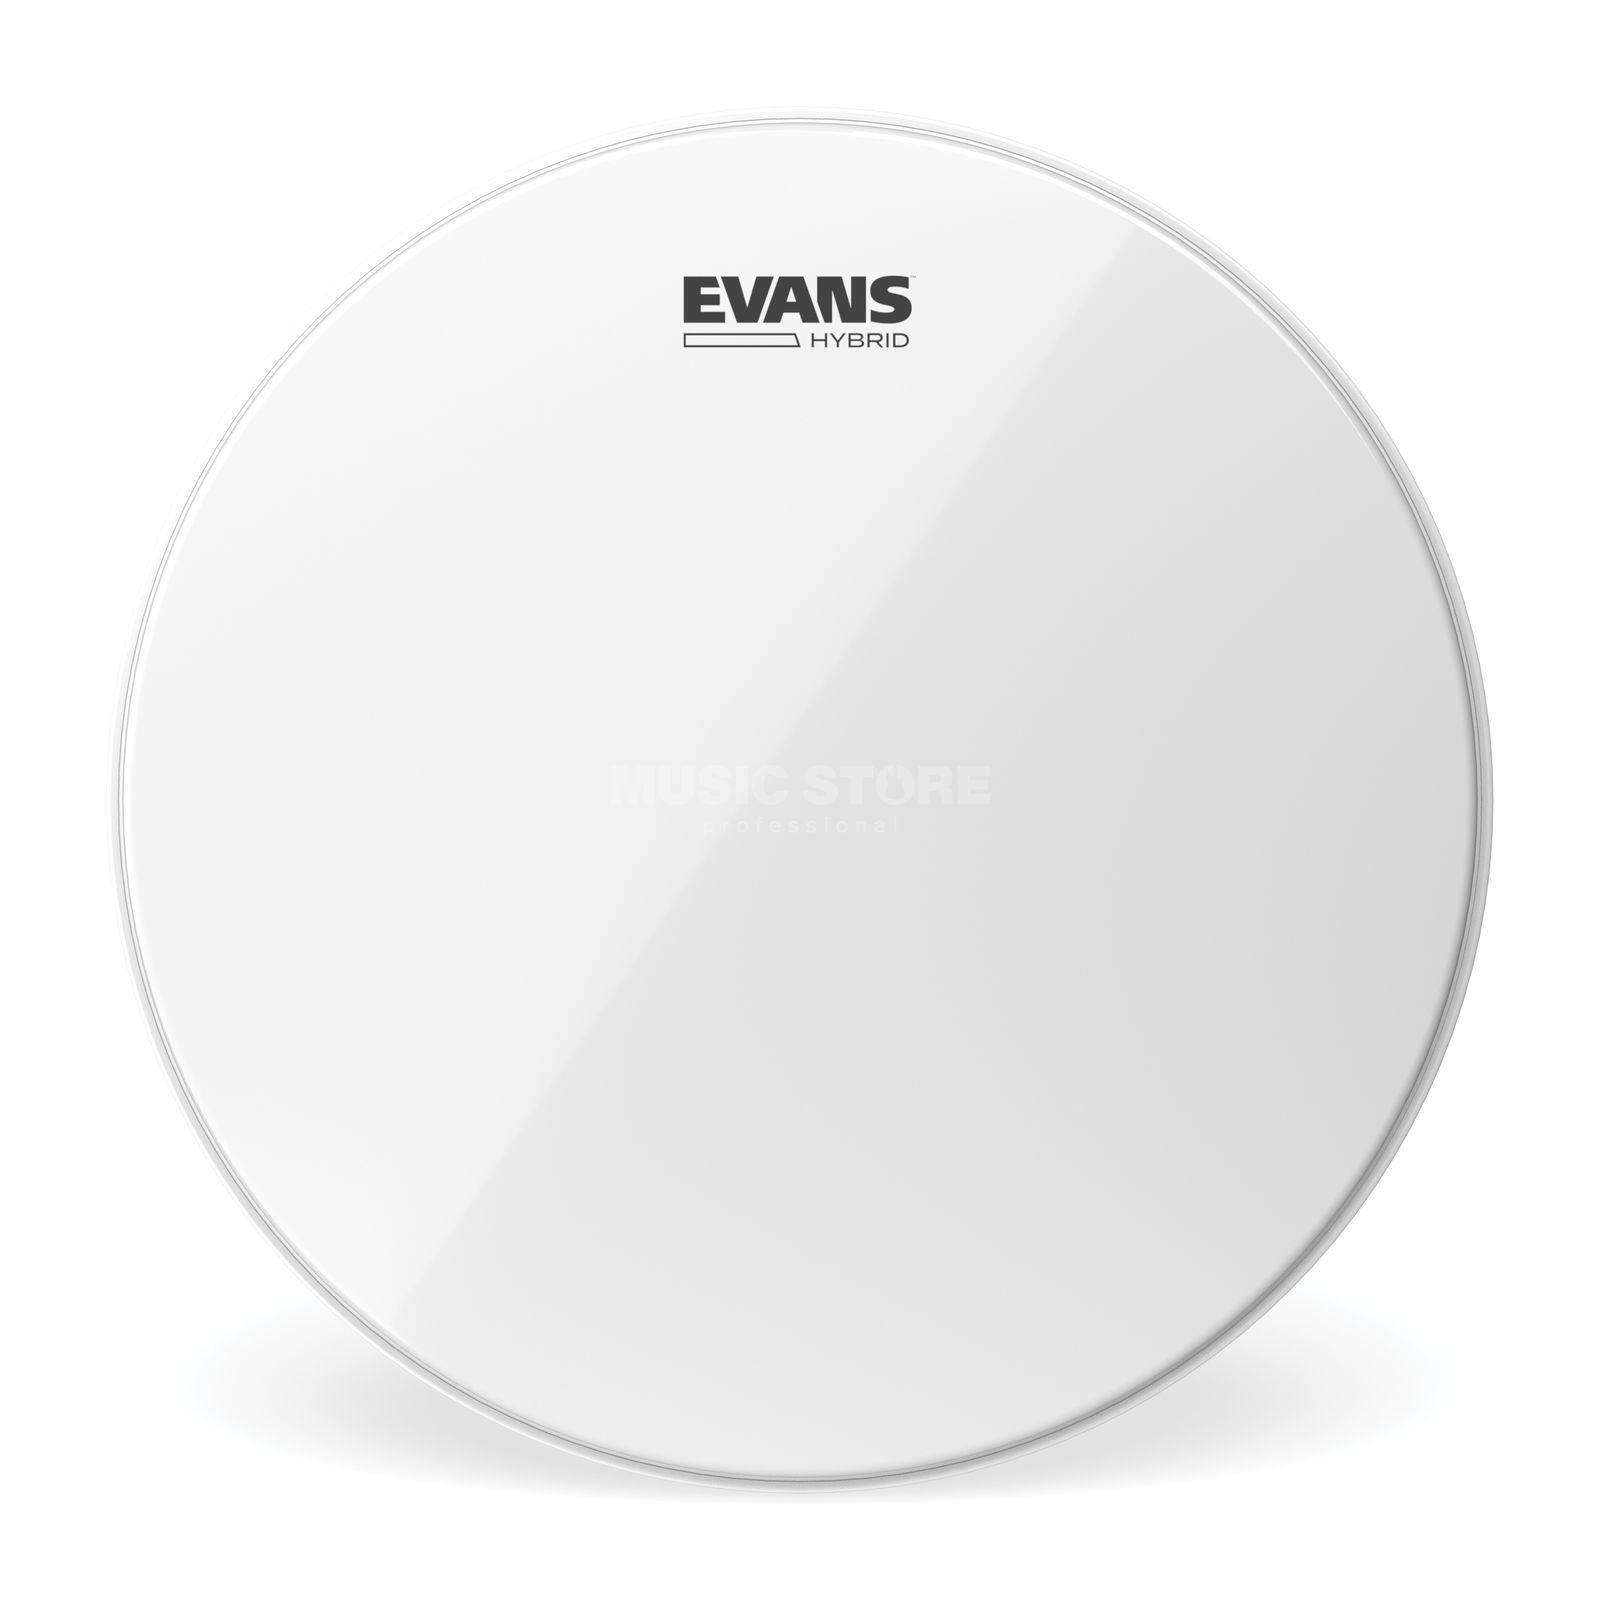 "Evans Hybrid 14"", SB14MHW, White, Marching Snare Batter Product Image"